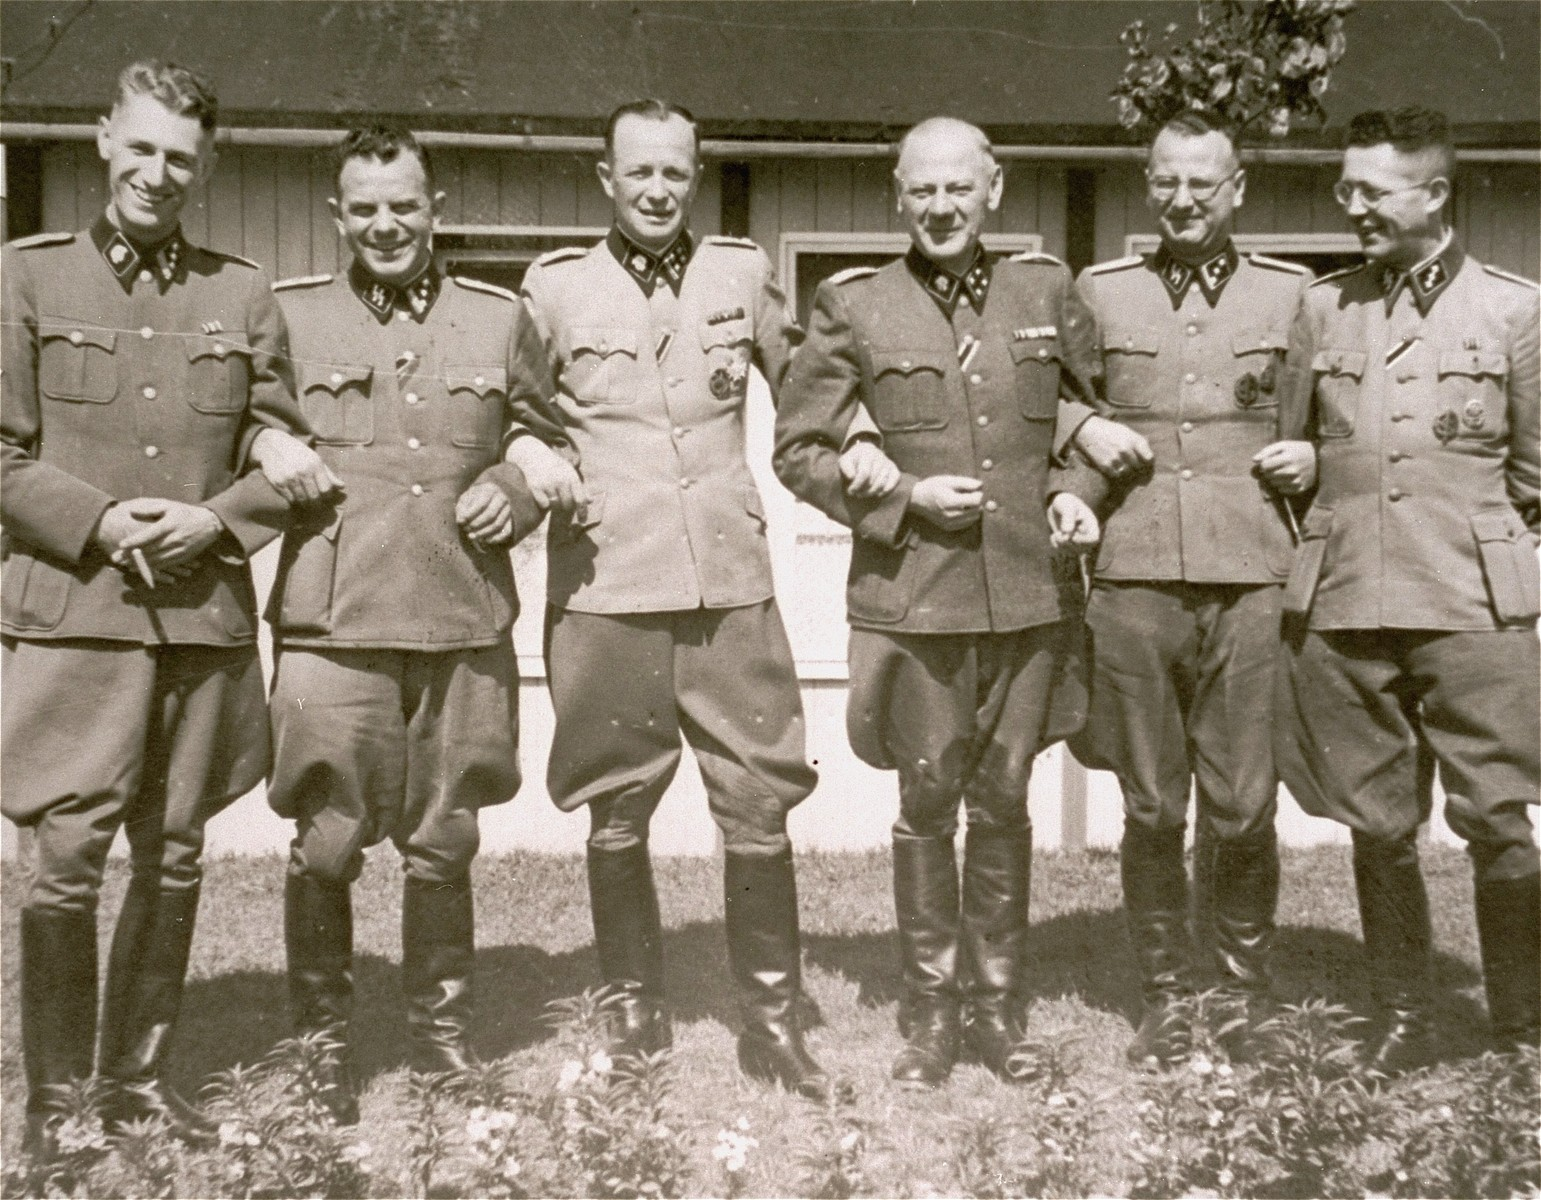 """Commandant Franz Ziereis poses with members of the SS staff of the Mauthausen concentration camp.  From left to right are Haupsturmfuehrer Erich Wasitzky (the camp apothecary);  Karl Schulz, chief of """"Politischer Abteilung"""" (Gestapo office in the camp); Standartenfuhrenfuehrer Franz Ziereis (the camp commandant); Sturmbannfuehrer Eduard Krebsbach (camp doctor); Karl Boehmichen (camp doctor) and an unidentified Obersturmfuehrer."""